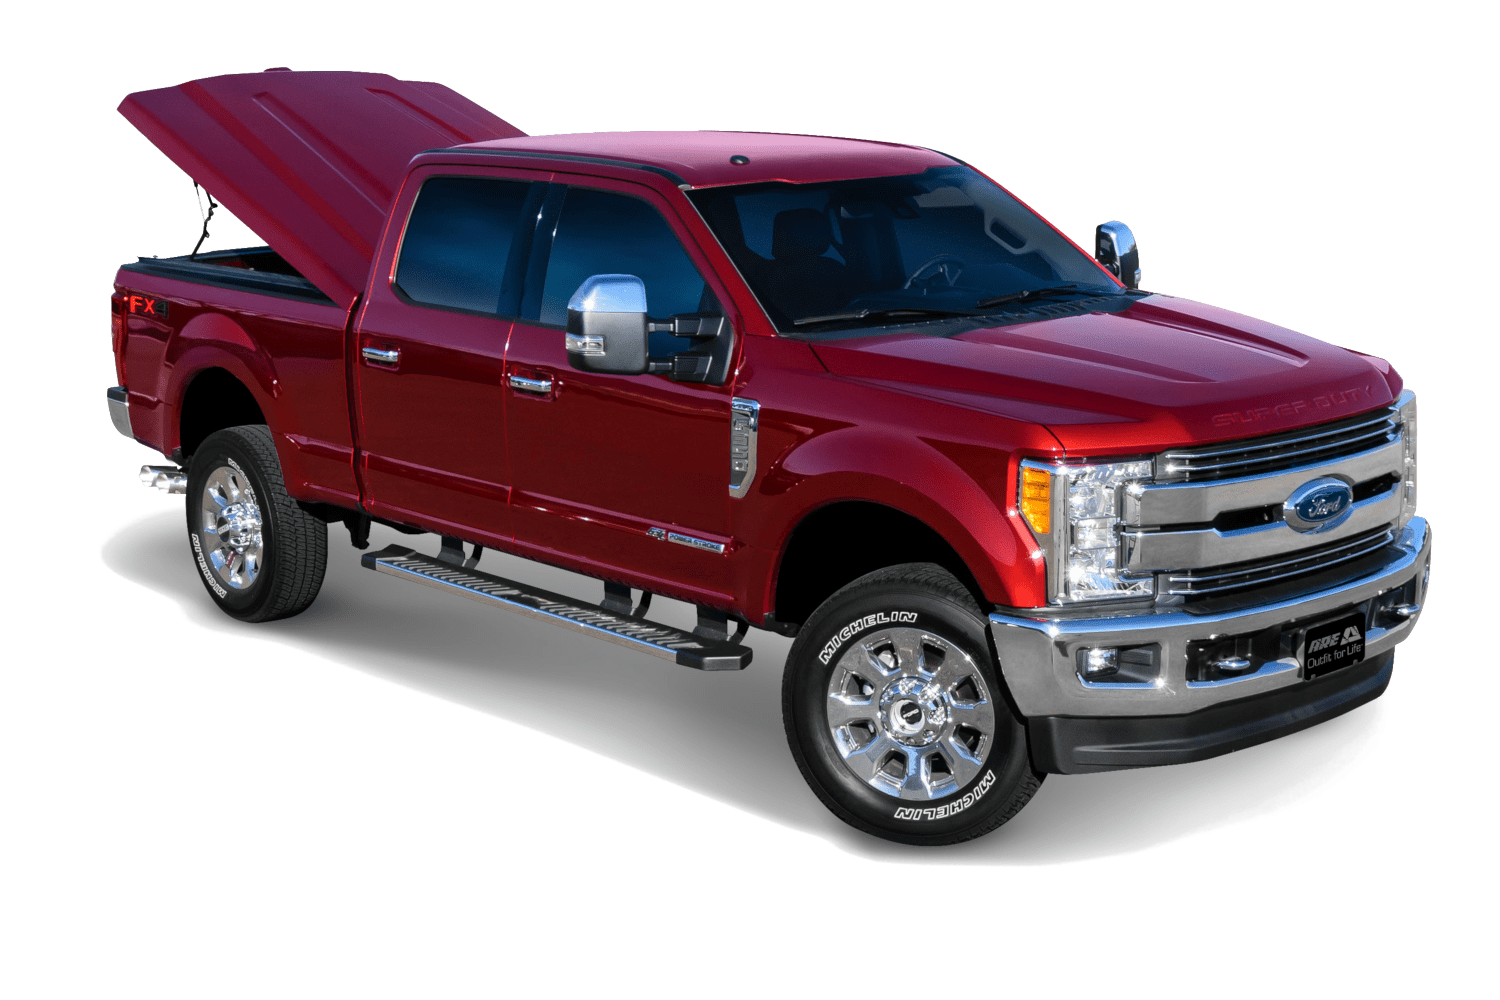 The ARE LSII shown installed on a Ford F250 SuperDuty.